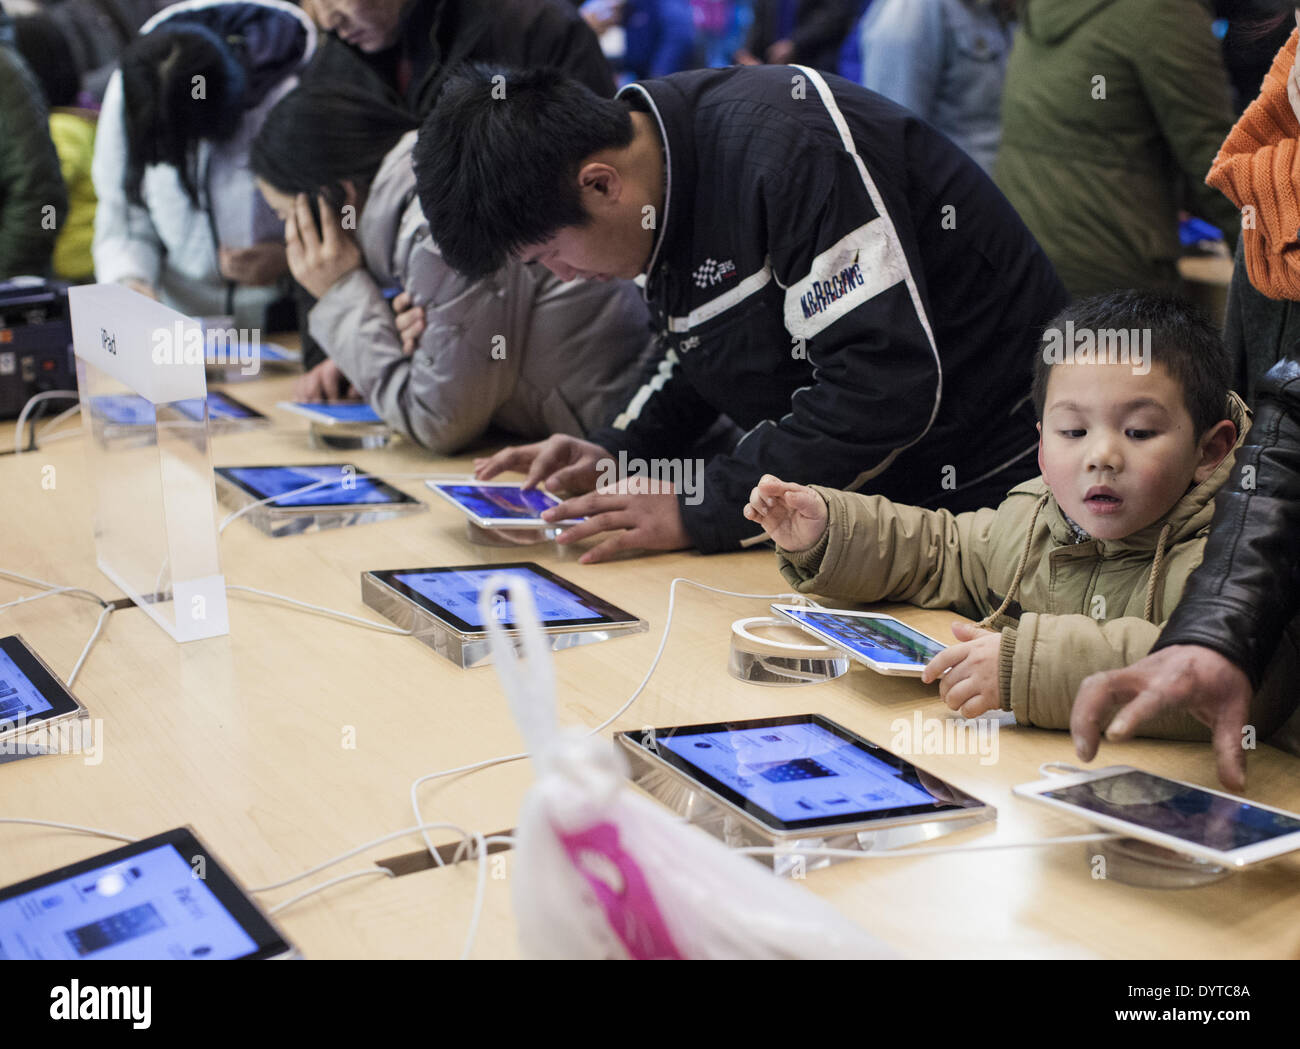 A kid try out Ipad at an Apple store - Stock Image